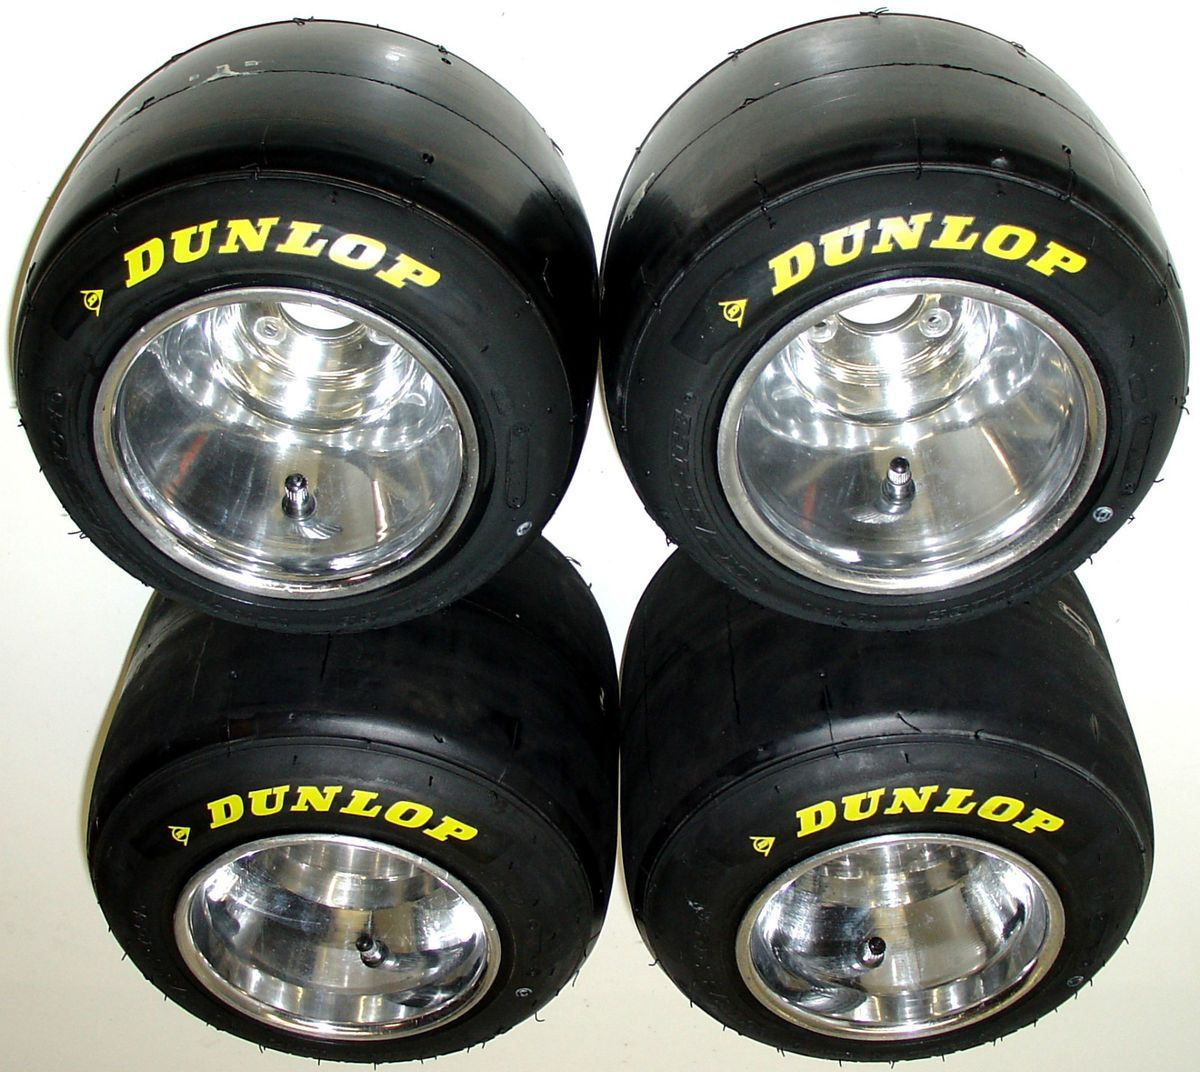 New Used Tires Wheels Rims In Orlando Fl Er Tire >> Set Of New Dunlop Racing Go Kart Tires Used Polished Wheels Go